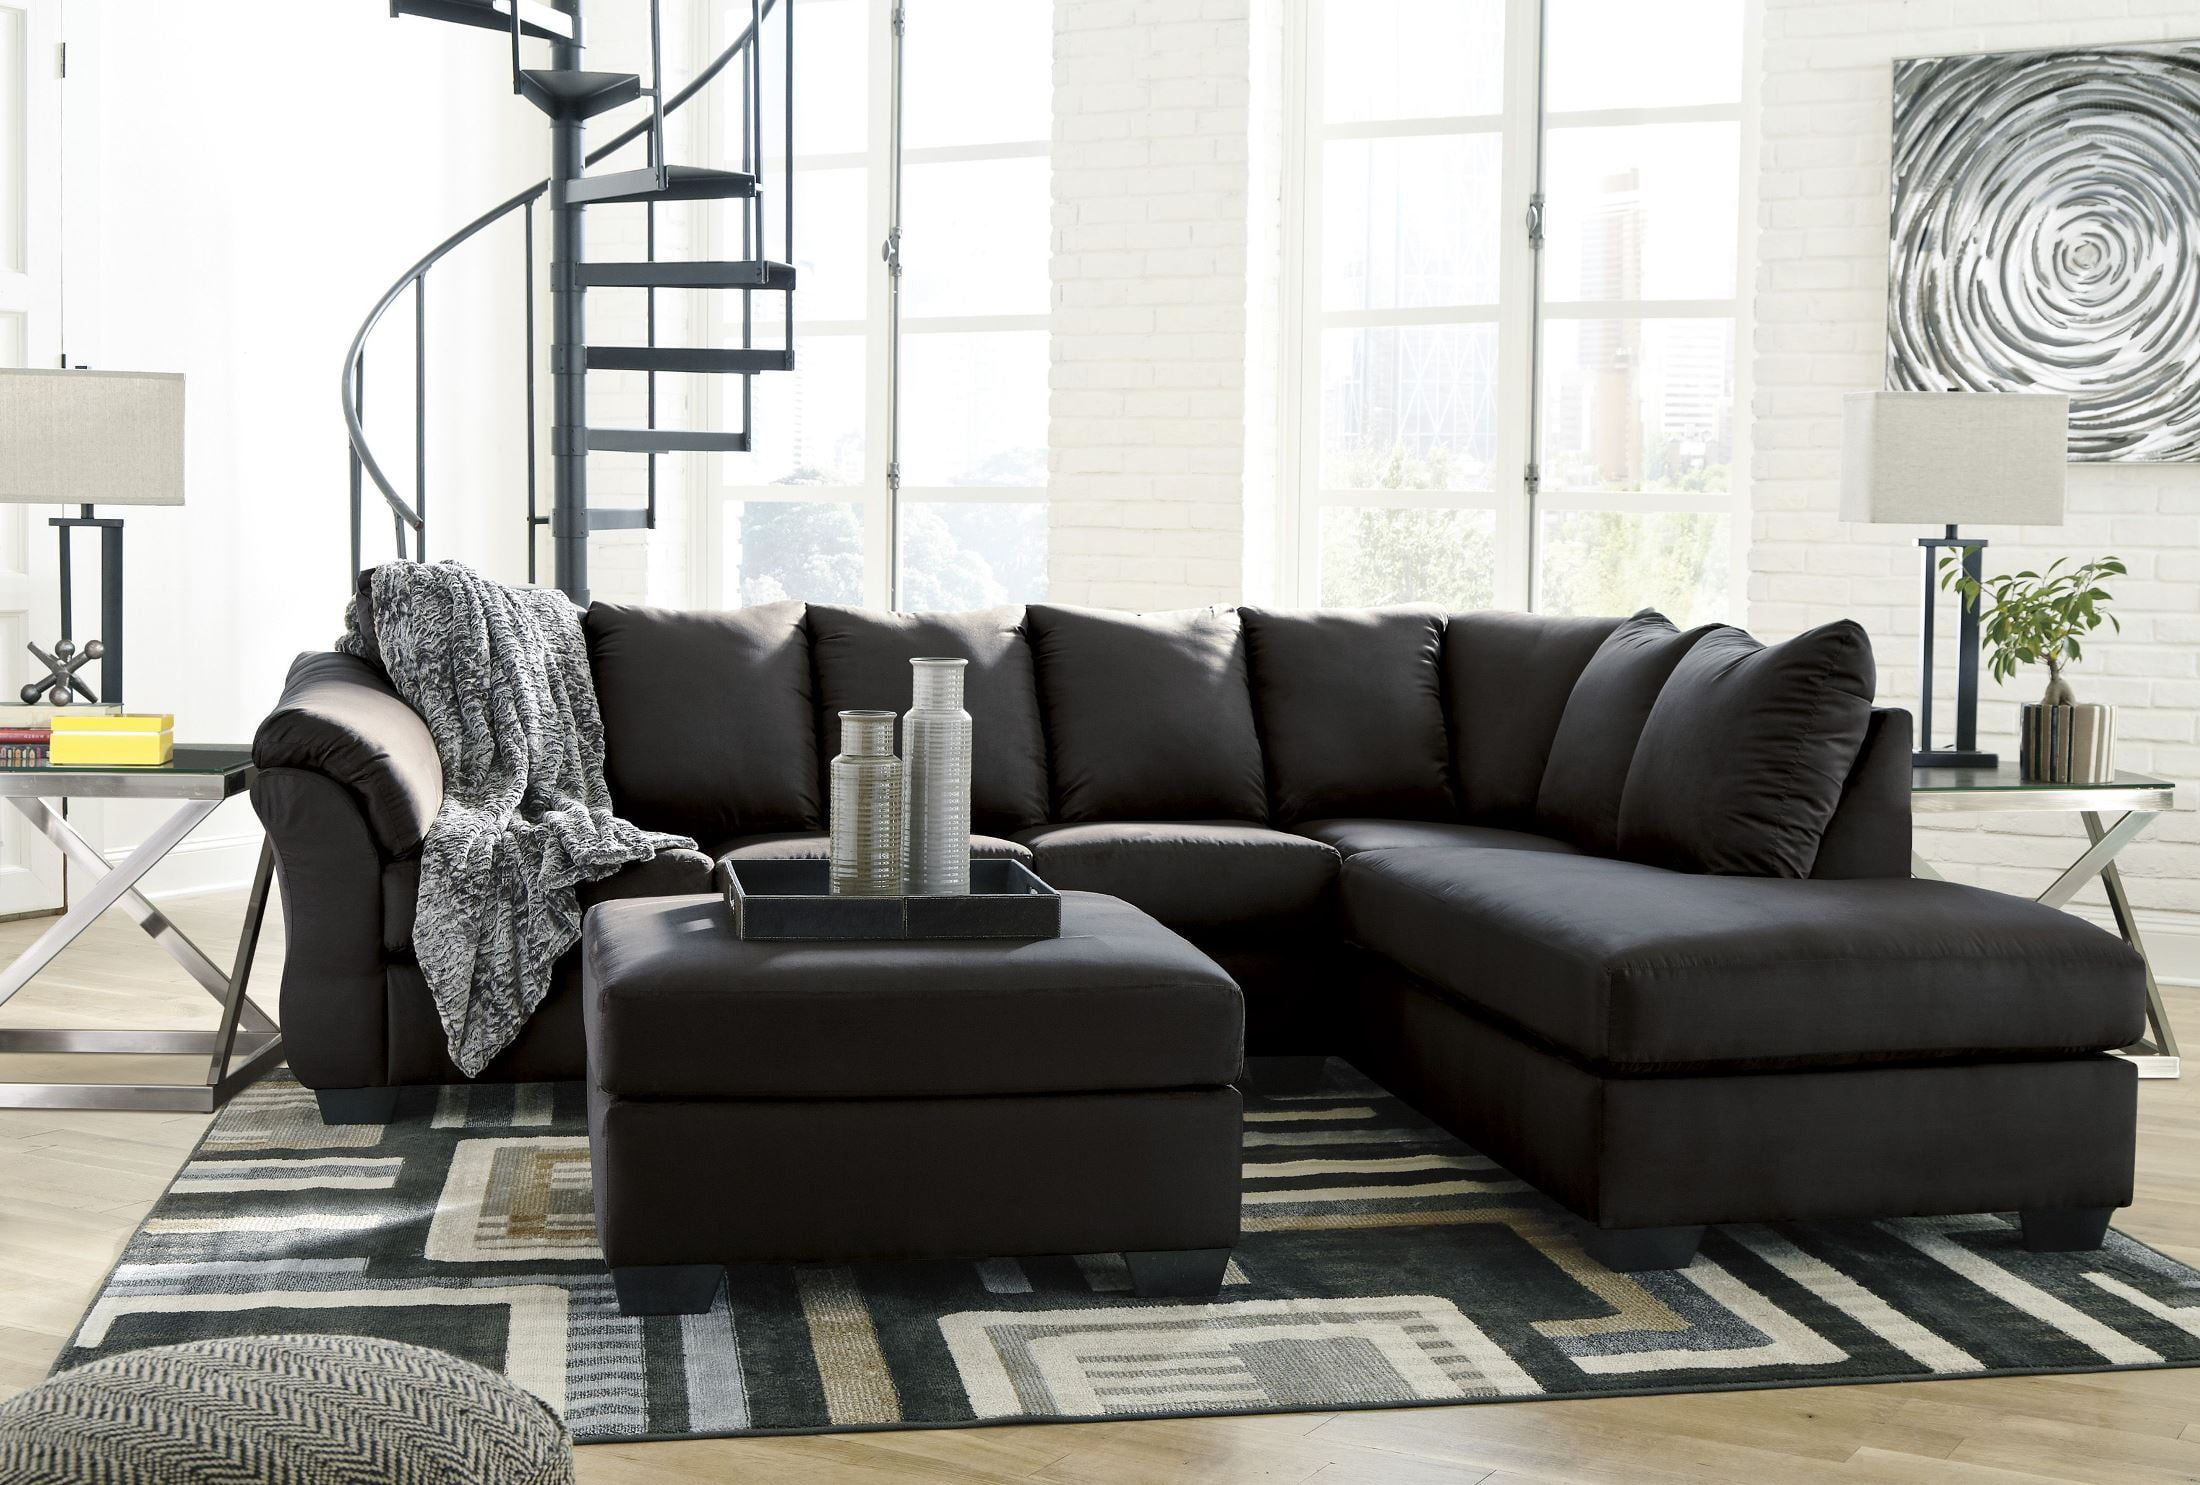 Etemi Etemi28 On Pinterest #signature #design #by #ashley #ellabury #living #room #sectional